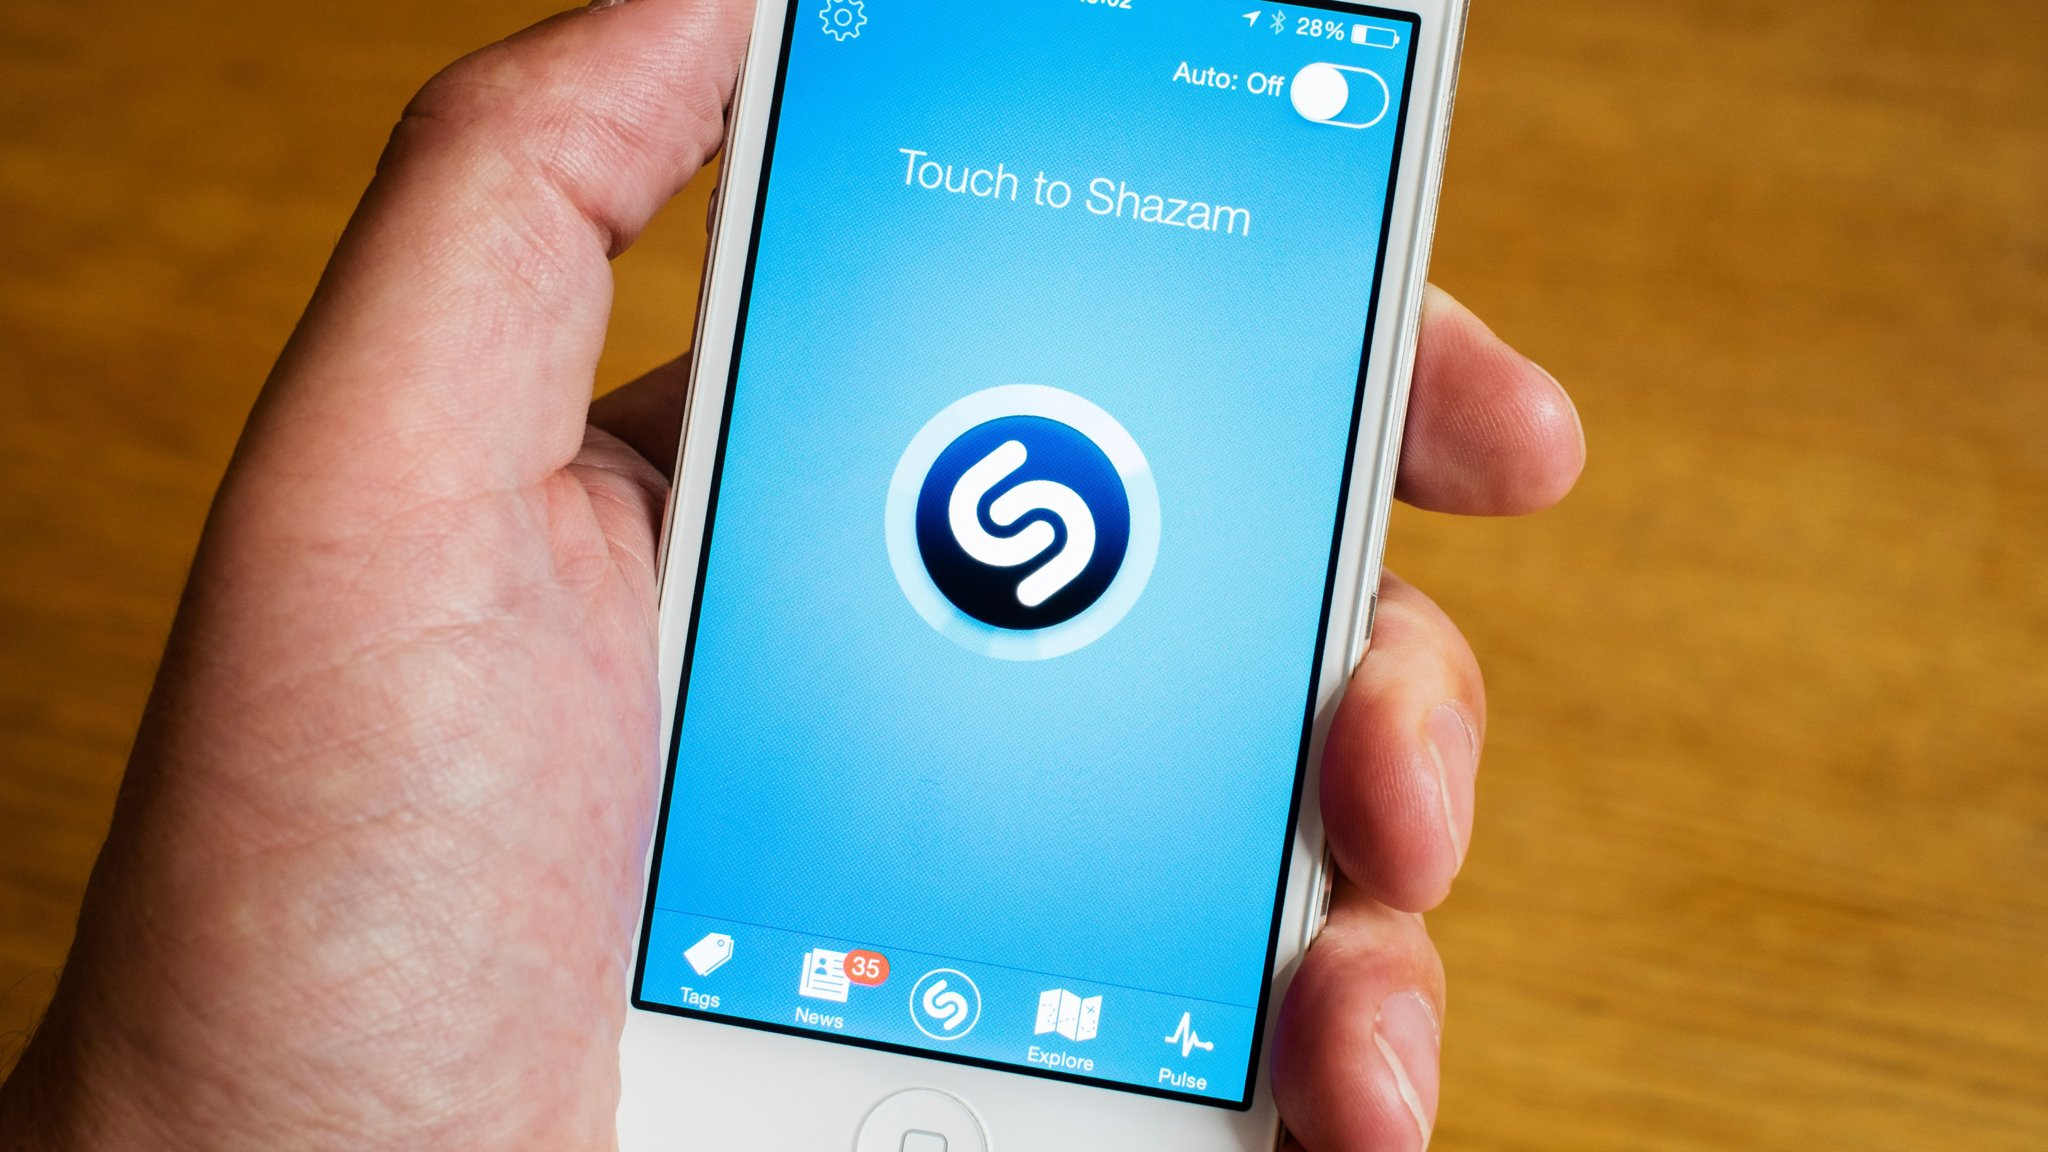 Apple confirms plans to buy music recognition app Shazam